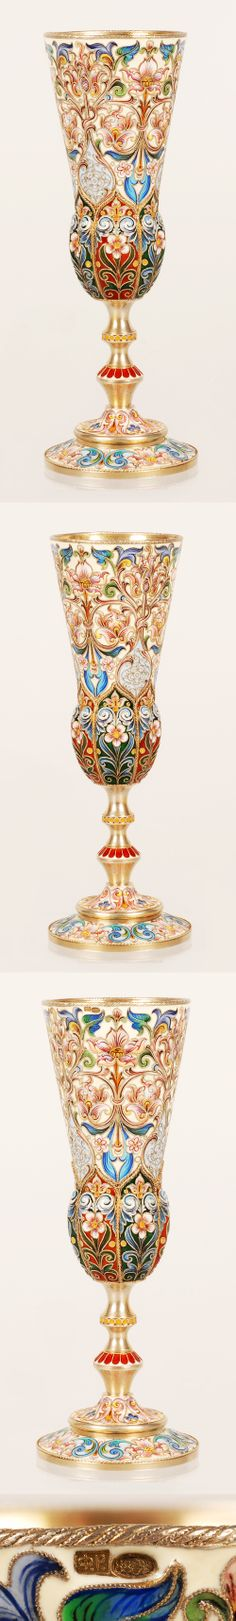 A Faberge gilded silver and shaded cloisonne enamel champagne flute, Feodor Ruckert, Moscow, circa 1900. Of tapering form, the lower section of the goblet gadrooned and decorated with applied cables, the stem with two knops, the upper body enameled with brightly colored, stylized floiage against a cream ground, set on a spreading foot similarly enameled